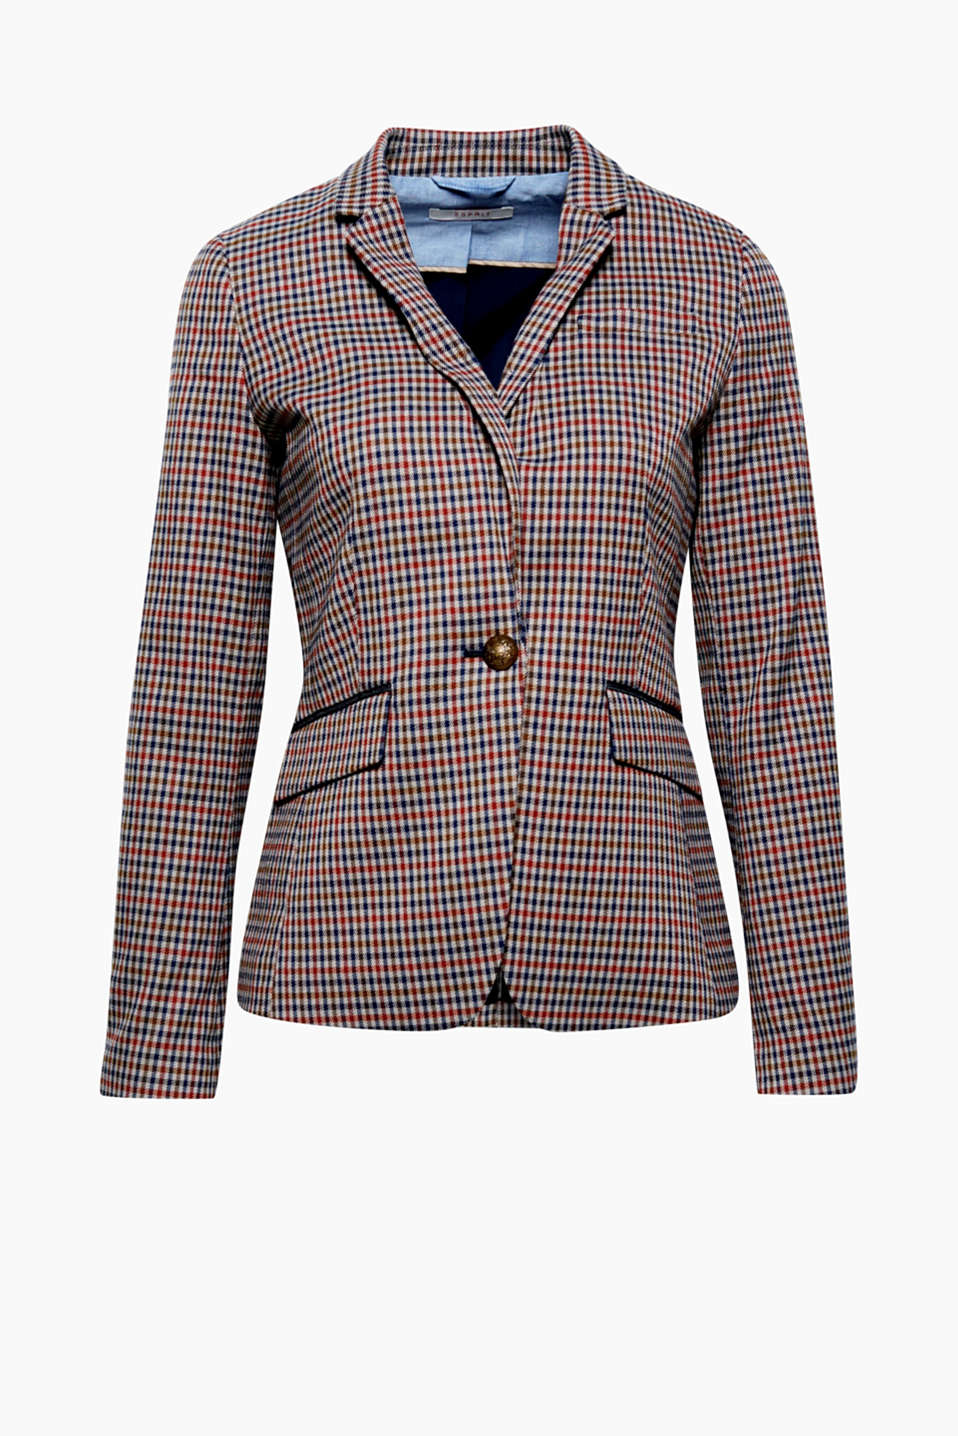 The last word in smart casual: made of fine blended fabric with a small check pattern, crest buttons and elbow patches!